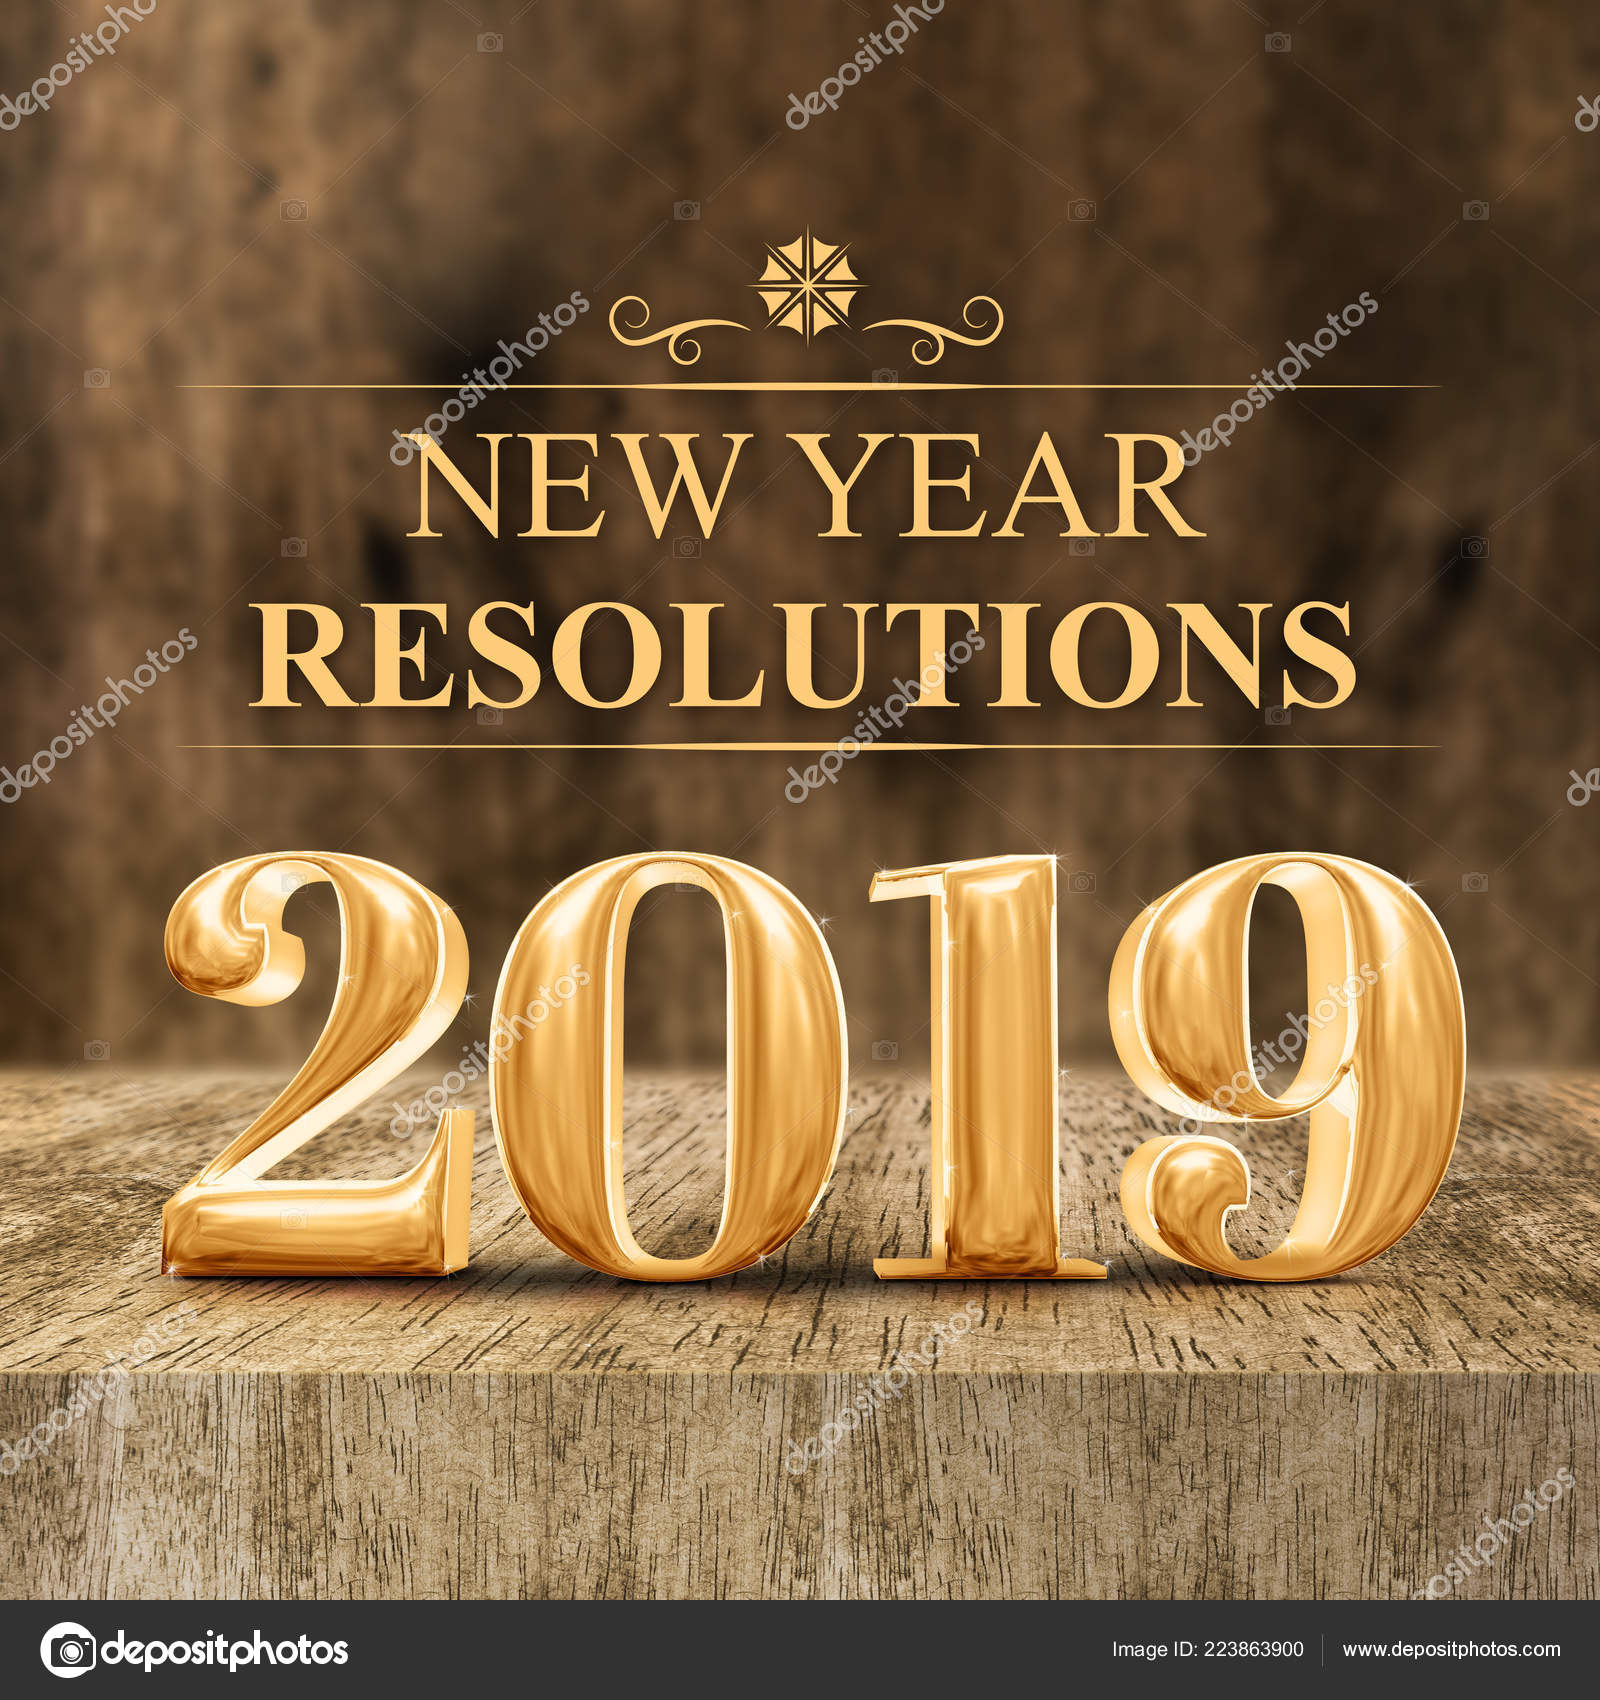 2019 New Years Resolutions Gold Shiny 2019 New Year Resolutions Rendering Wooden Block Table